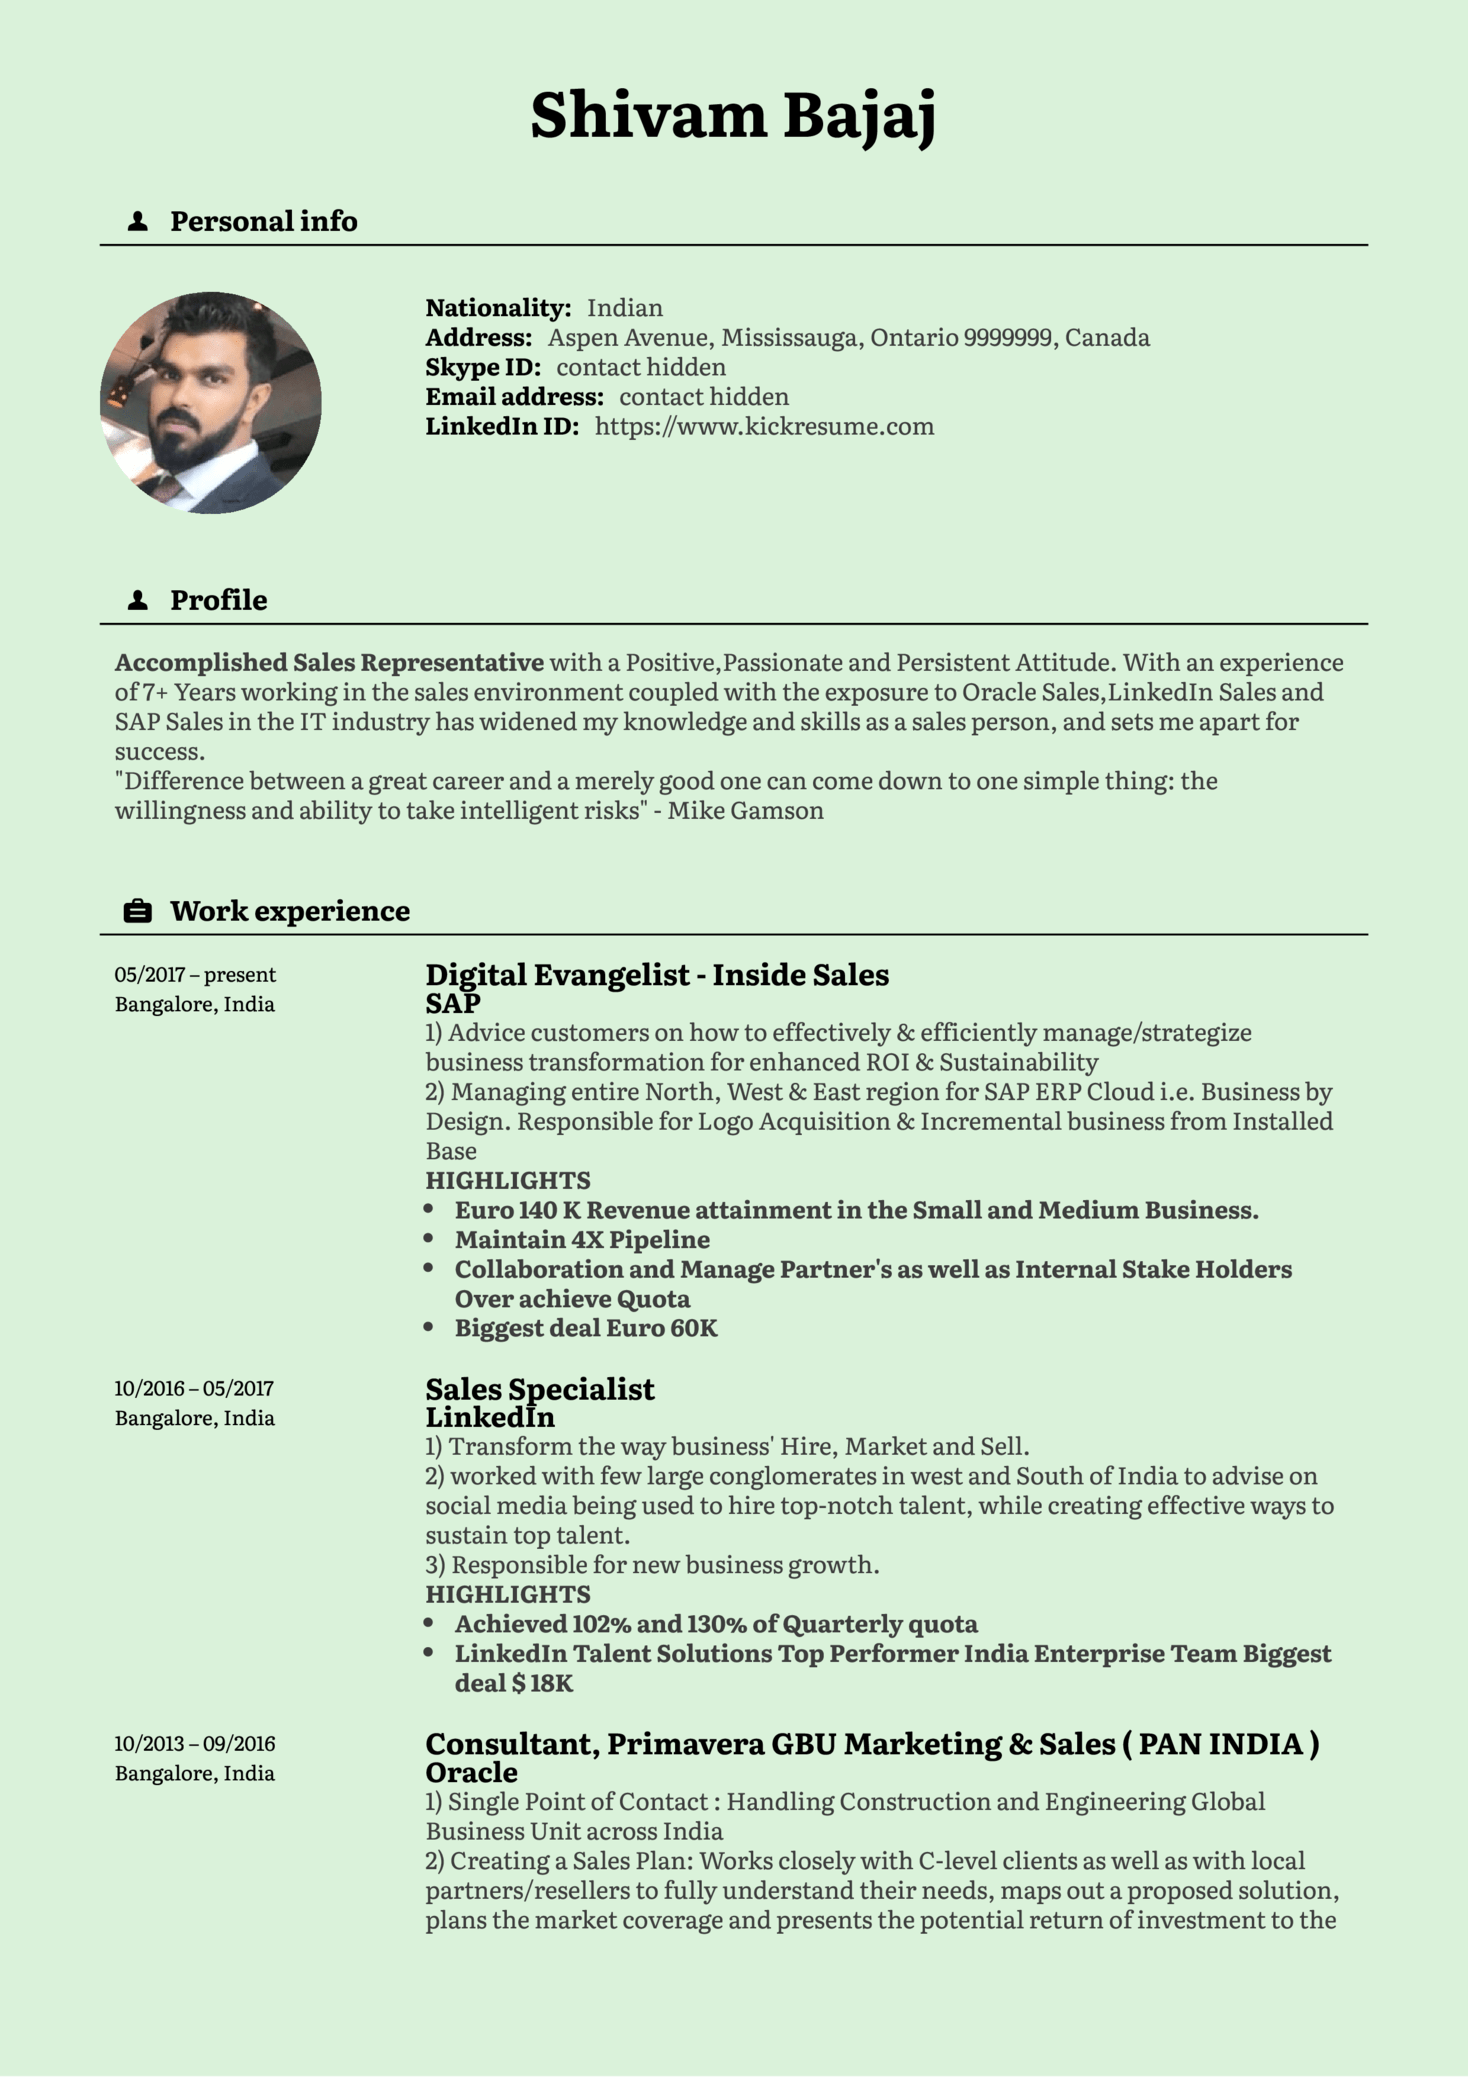 Inside Sales Manager Resume Template (parte 1)